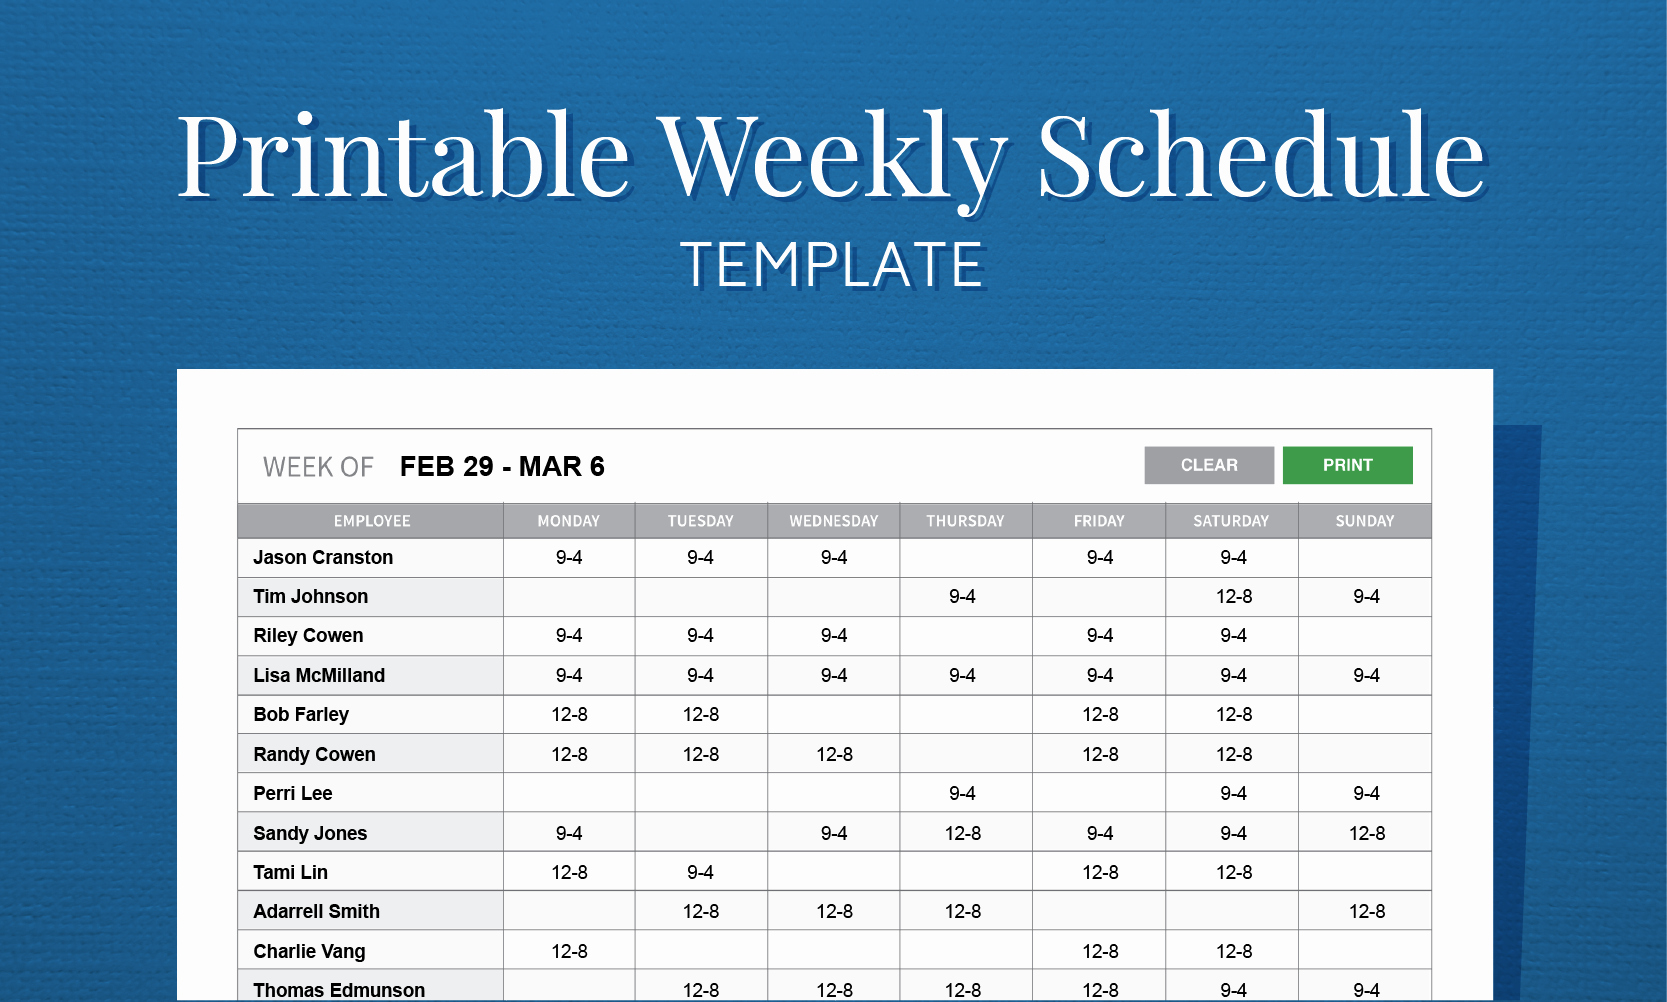 7 Day Work Schedule Template Awesome Employee Work Schedule Video Search Engine at Search